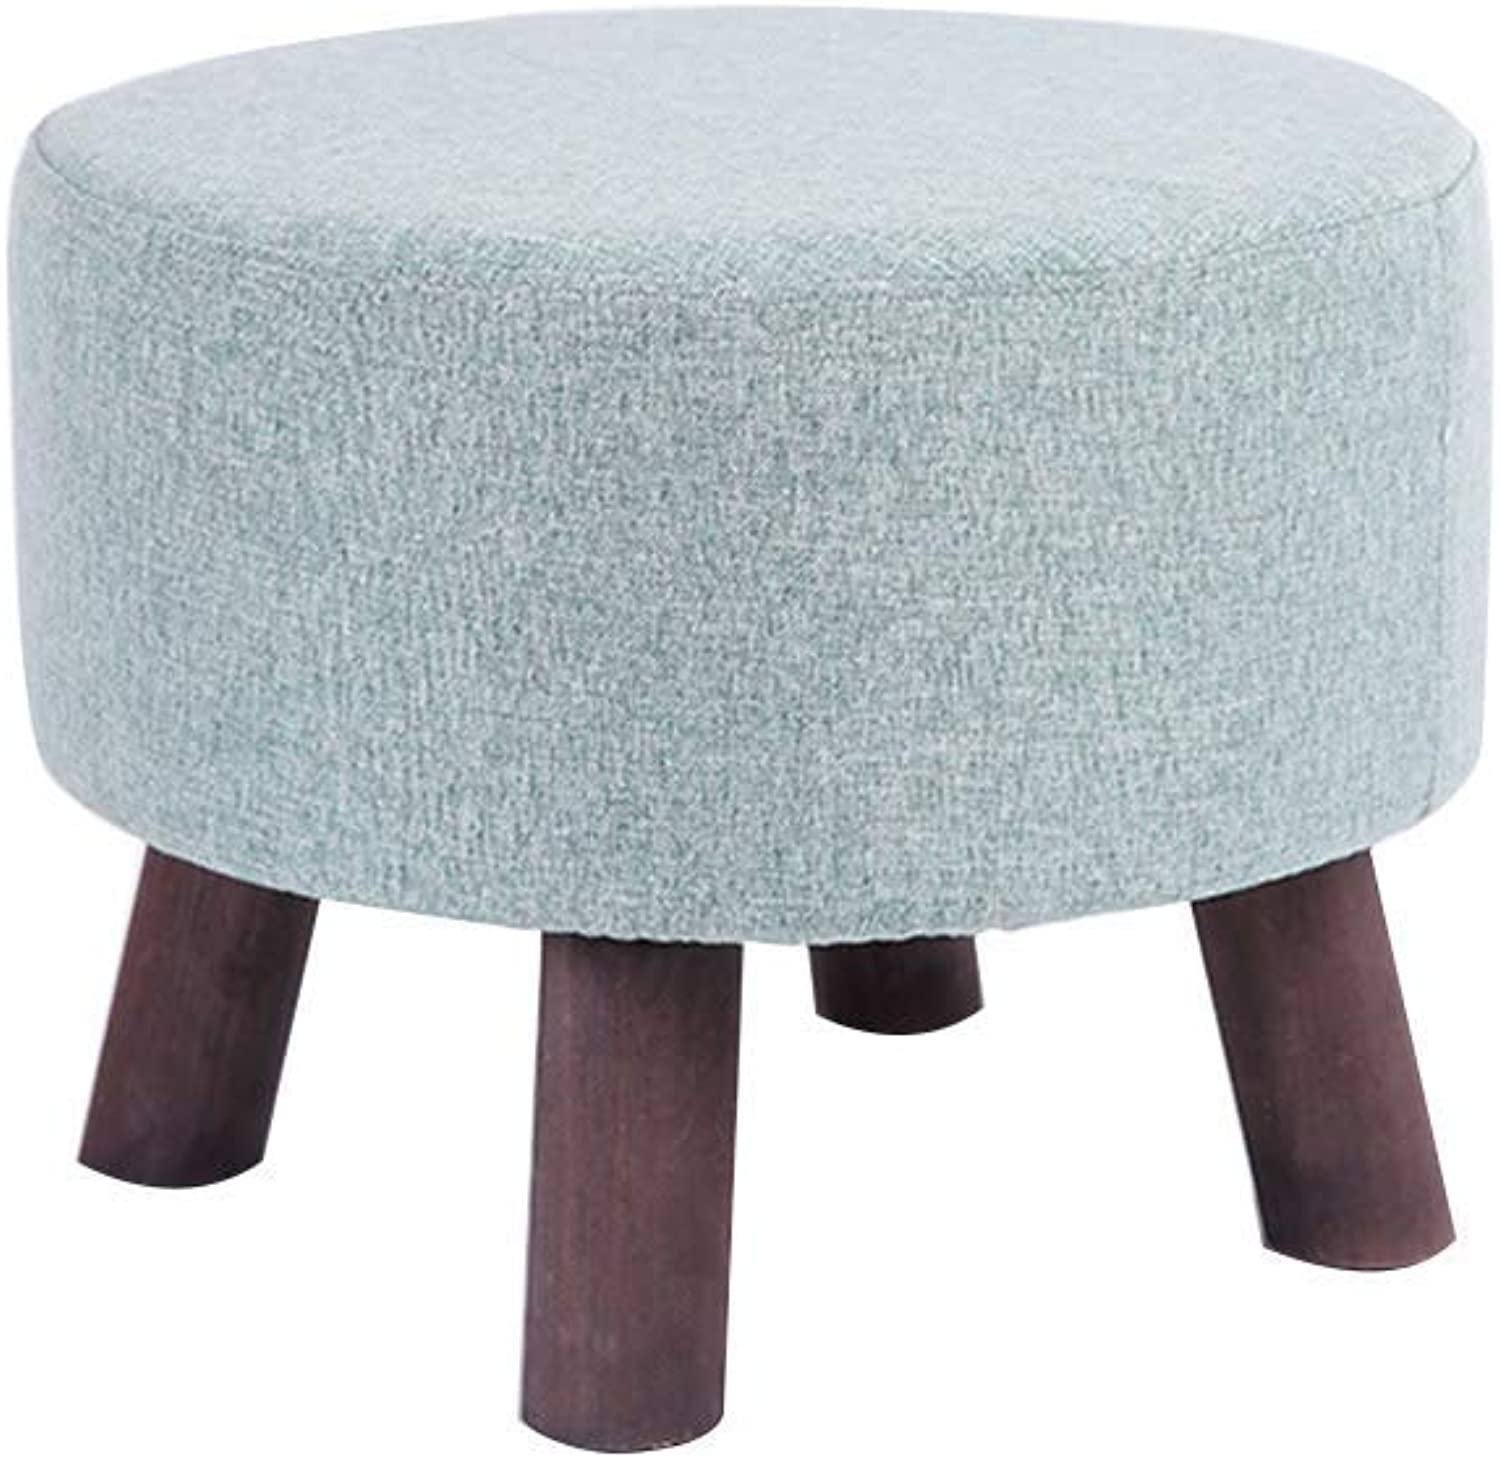 Comfortable Lounge Chair Solid Wood Stool Cotton Linen Sofa Stool